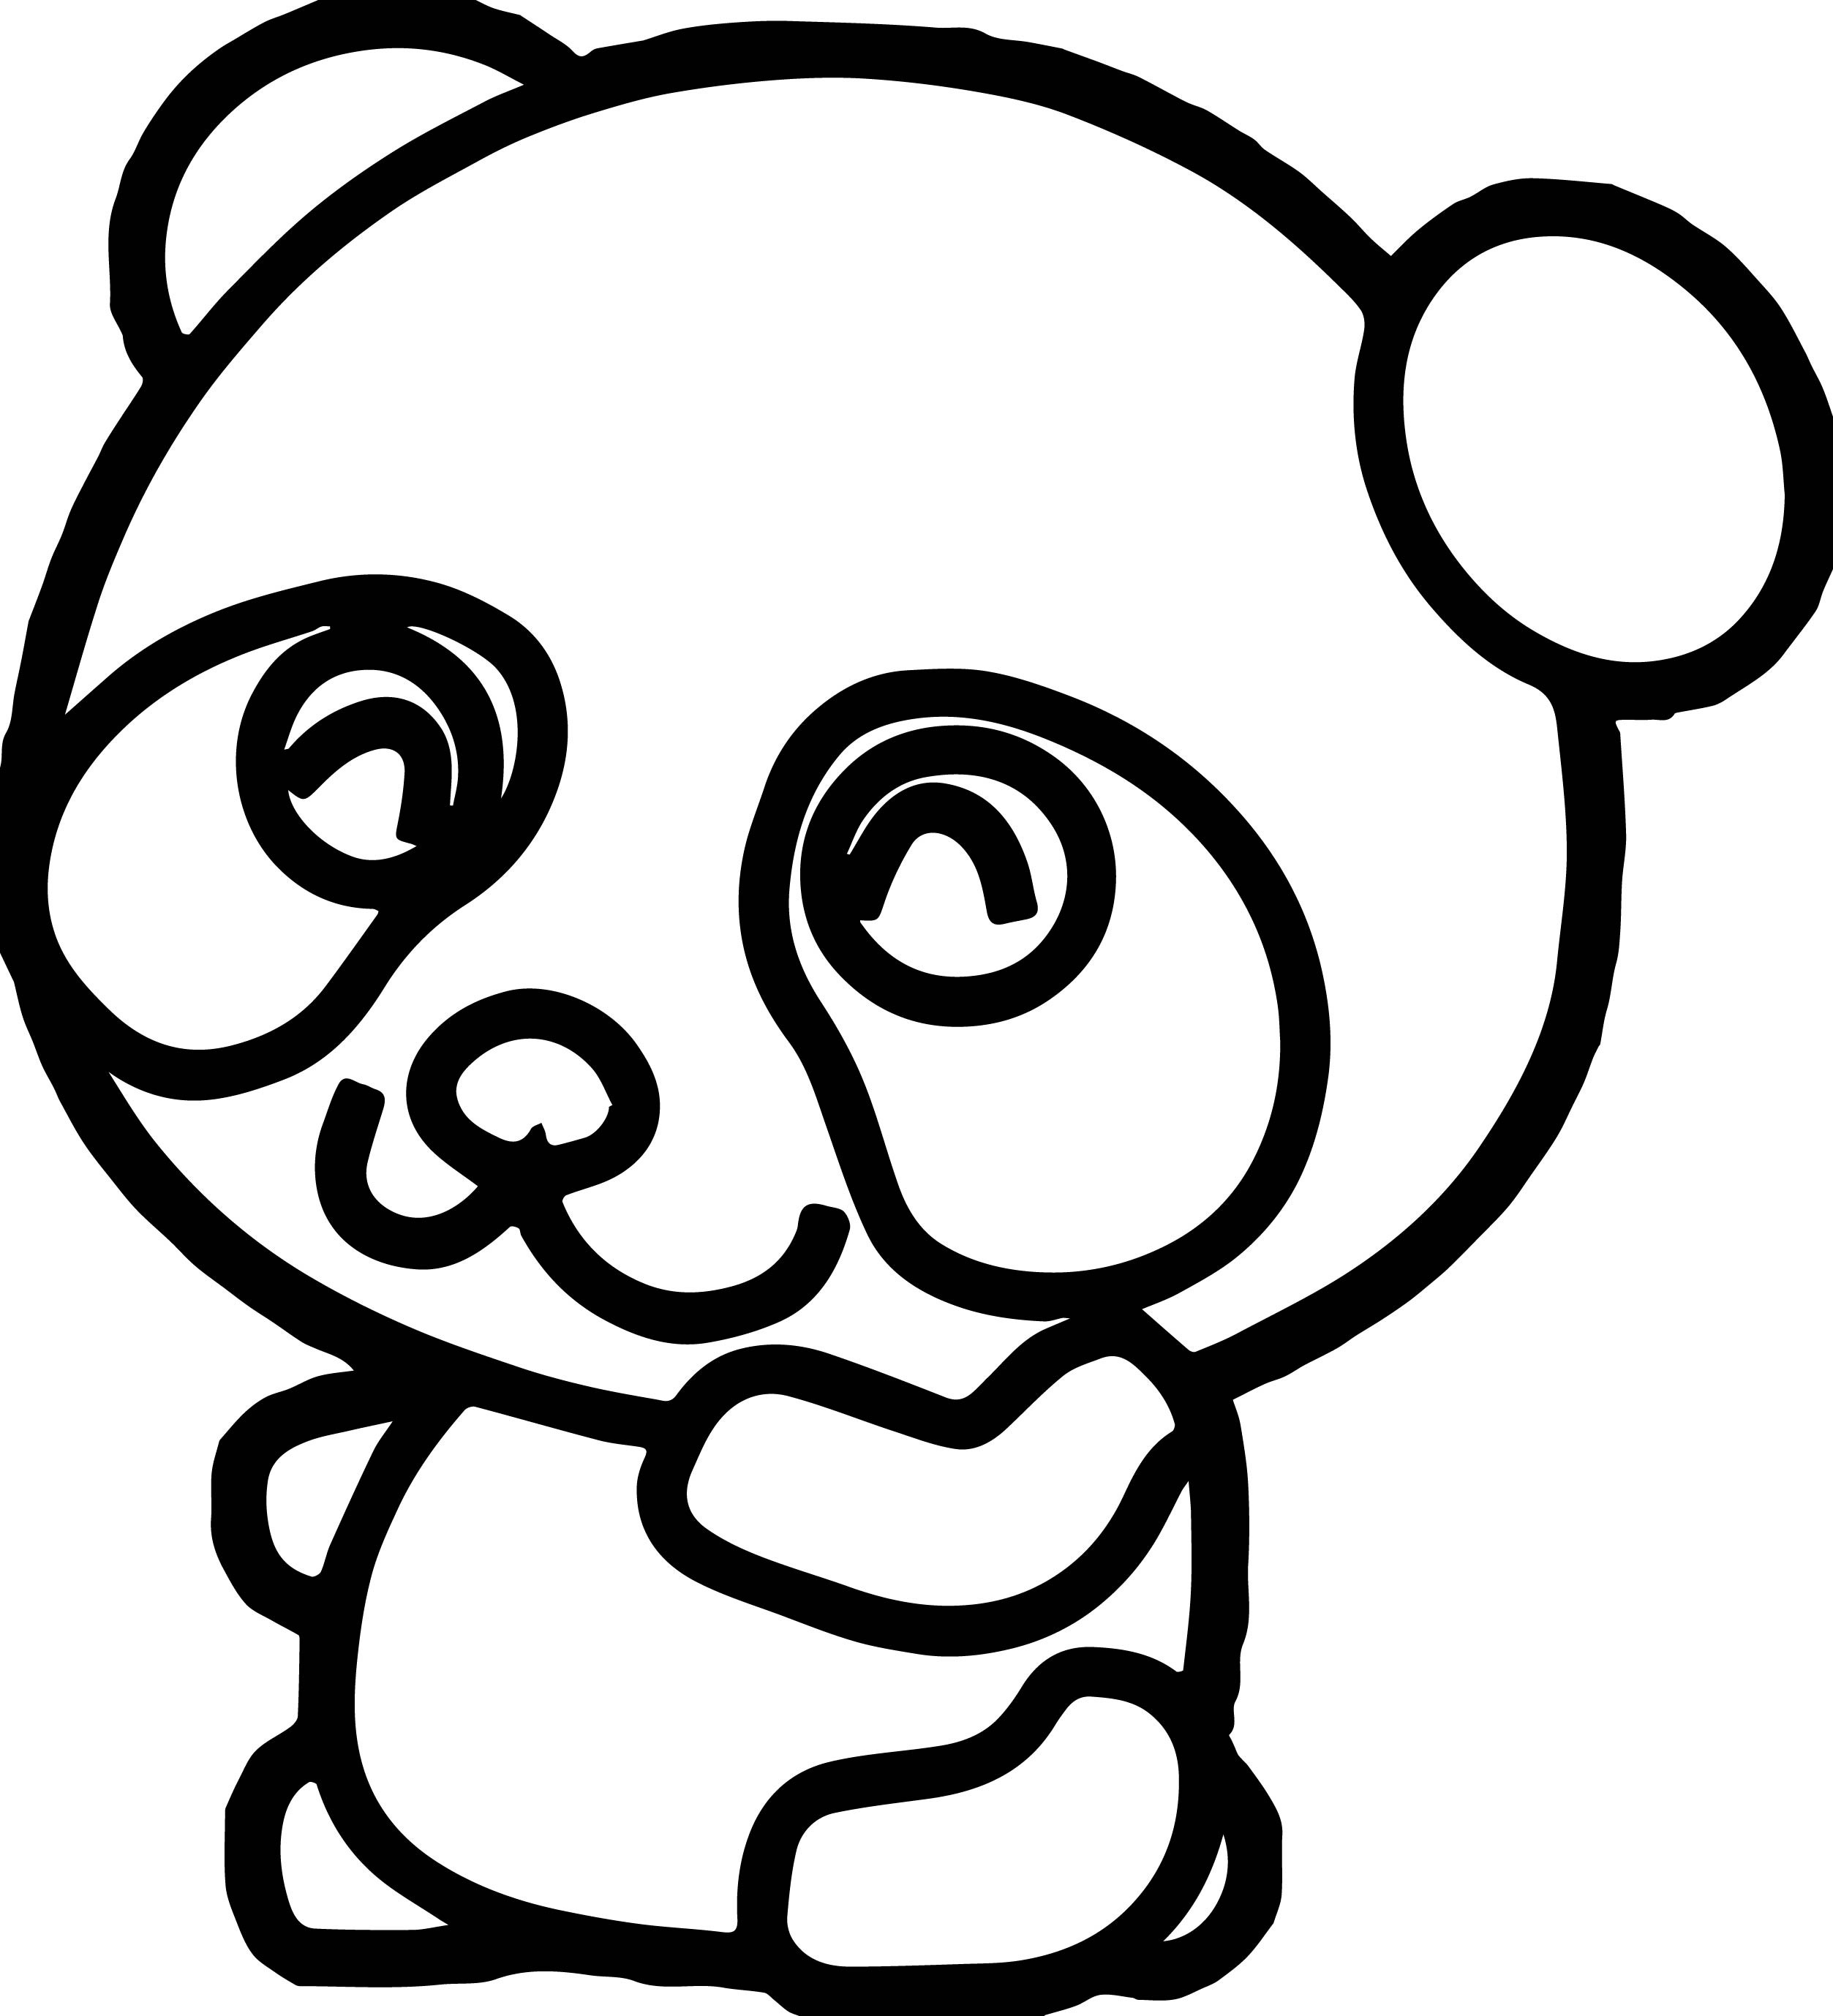 coloring pages of pandas pandas to download for free pandas kids coloring pages coloring pandas of pages